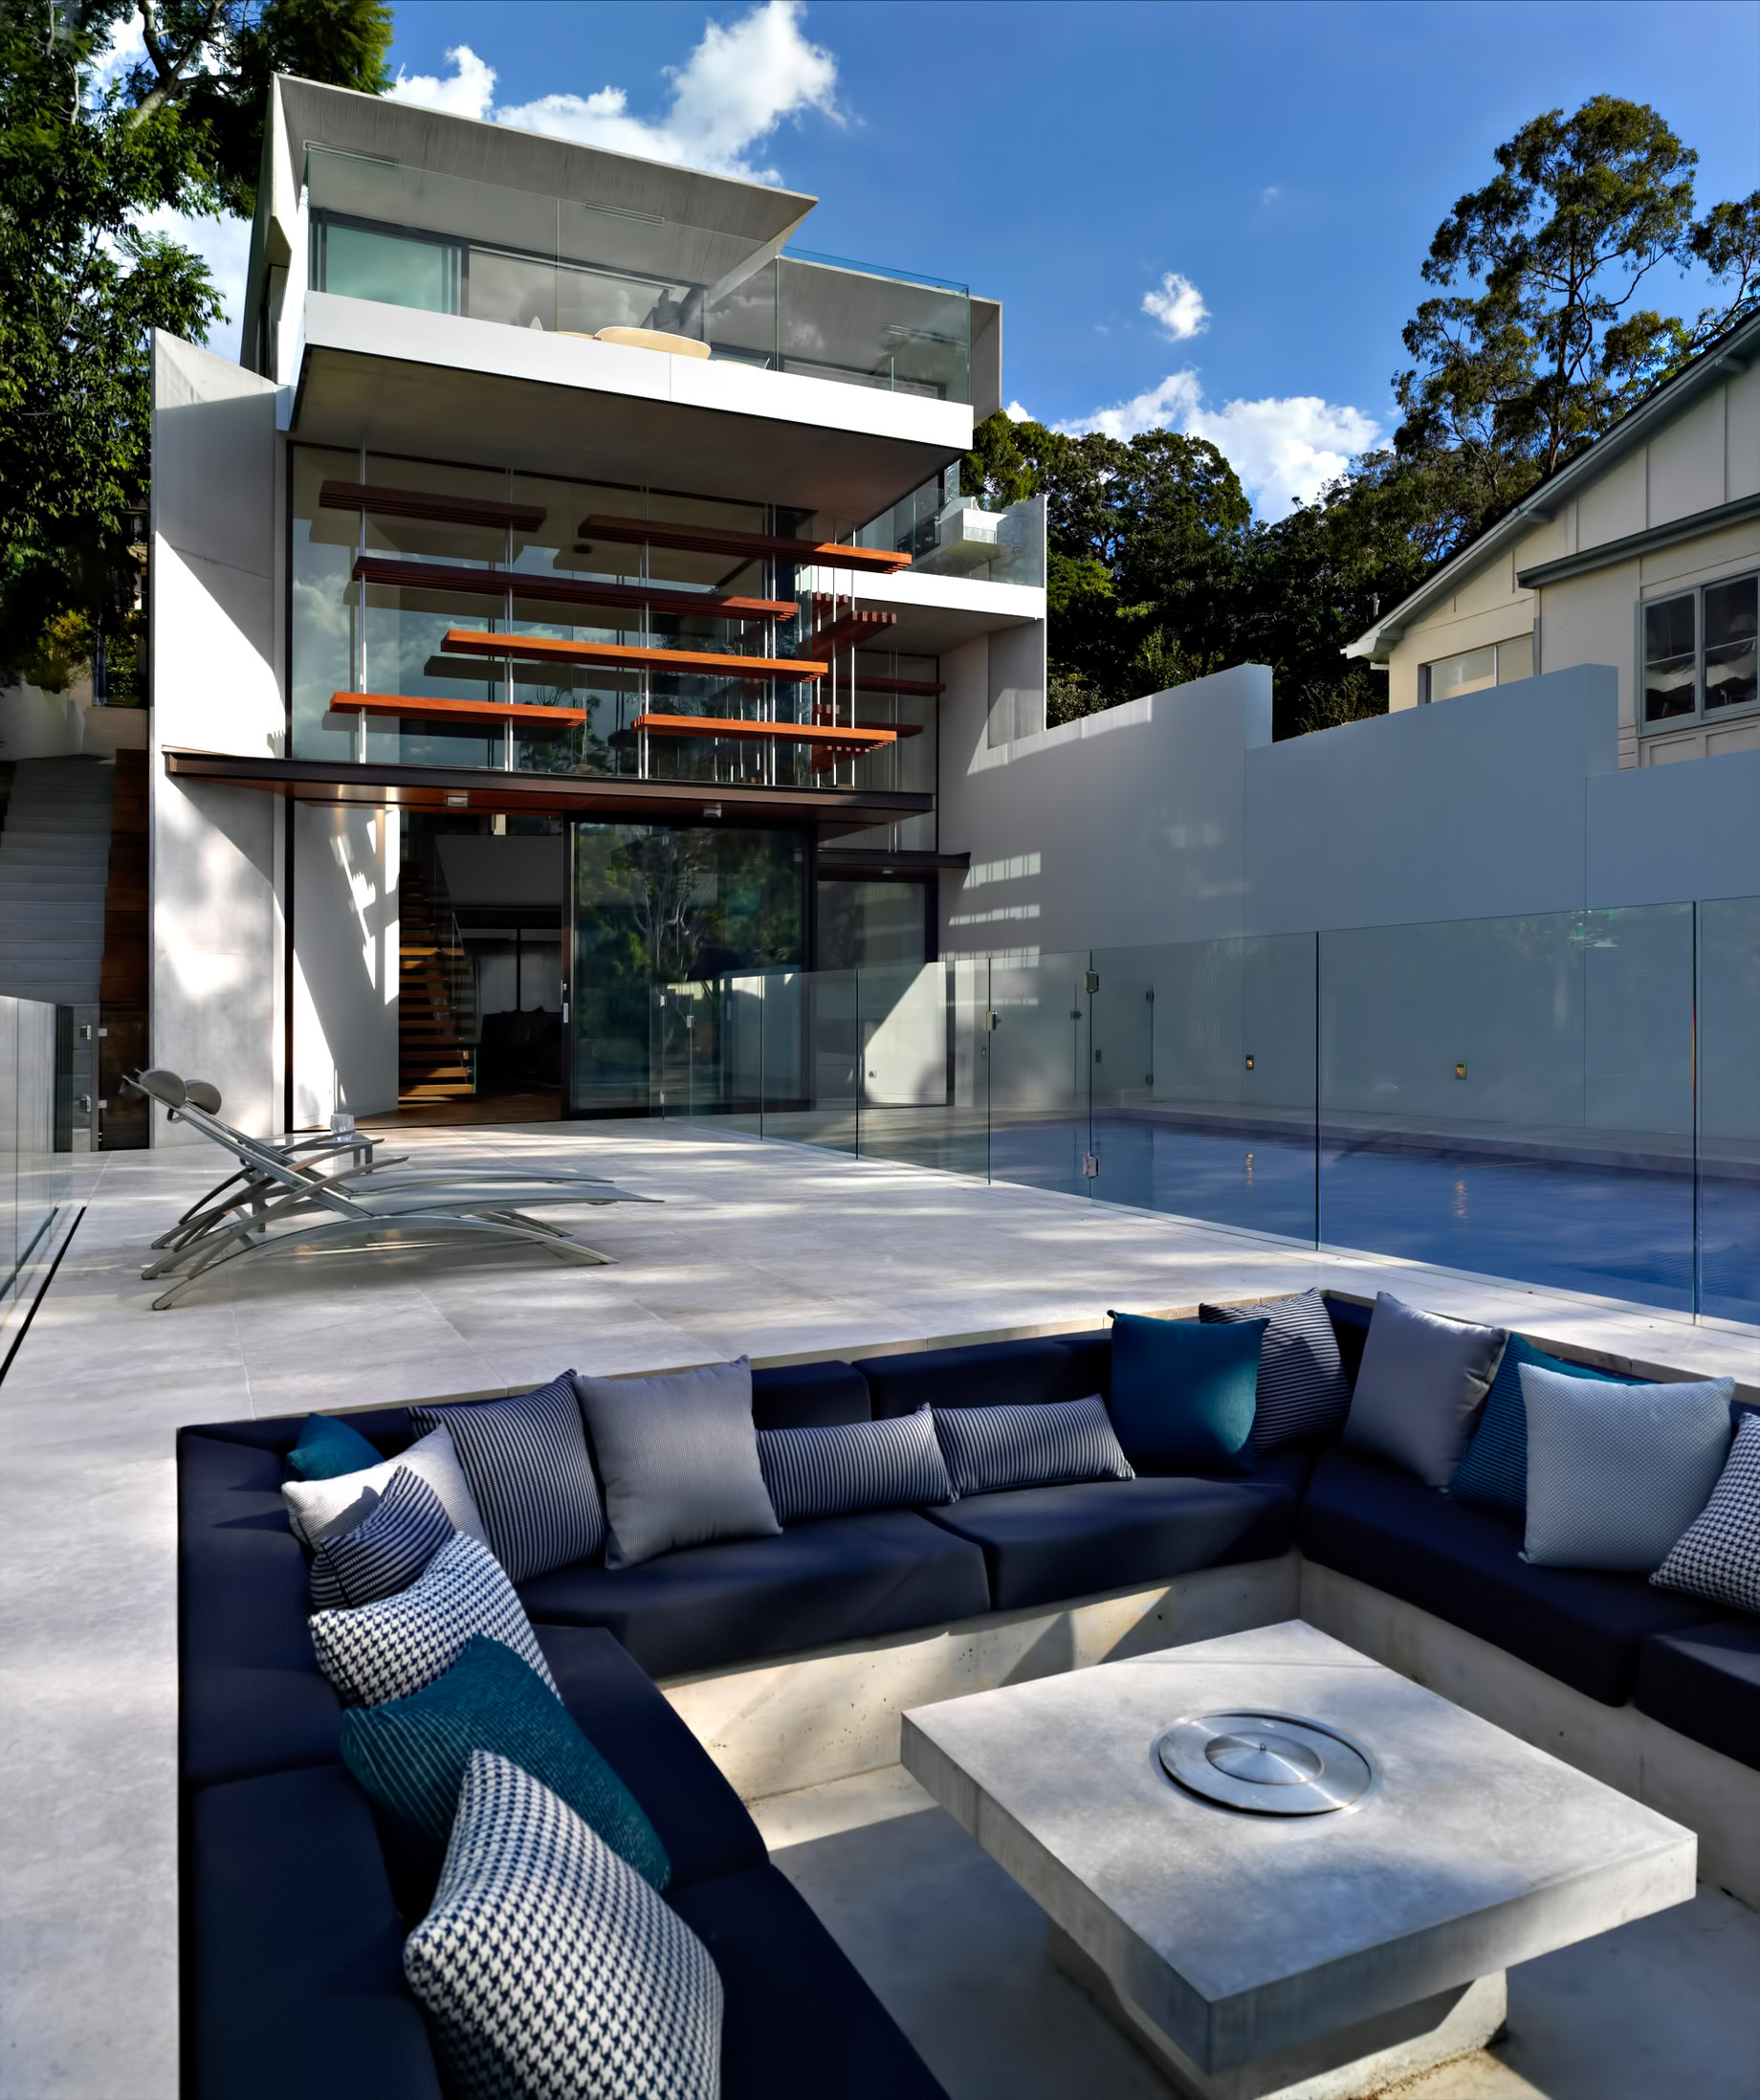 Mosman House Residence - Sydney, New South Wales, Australia